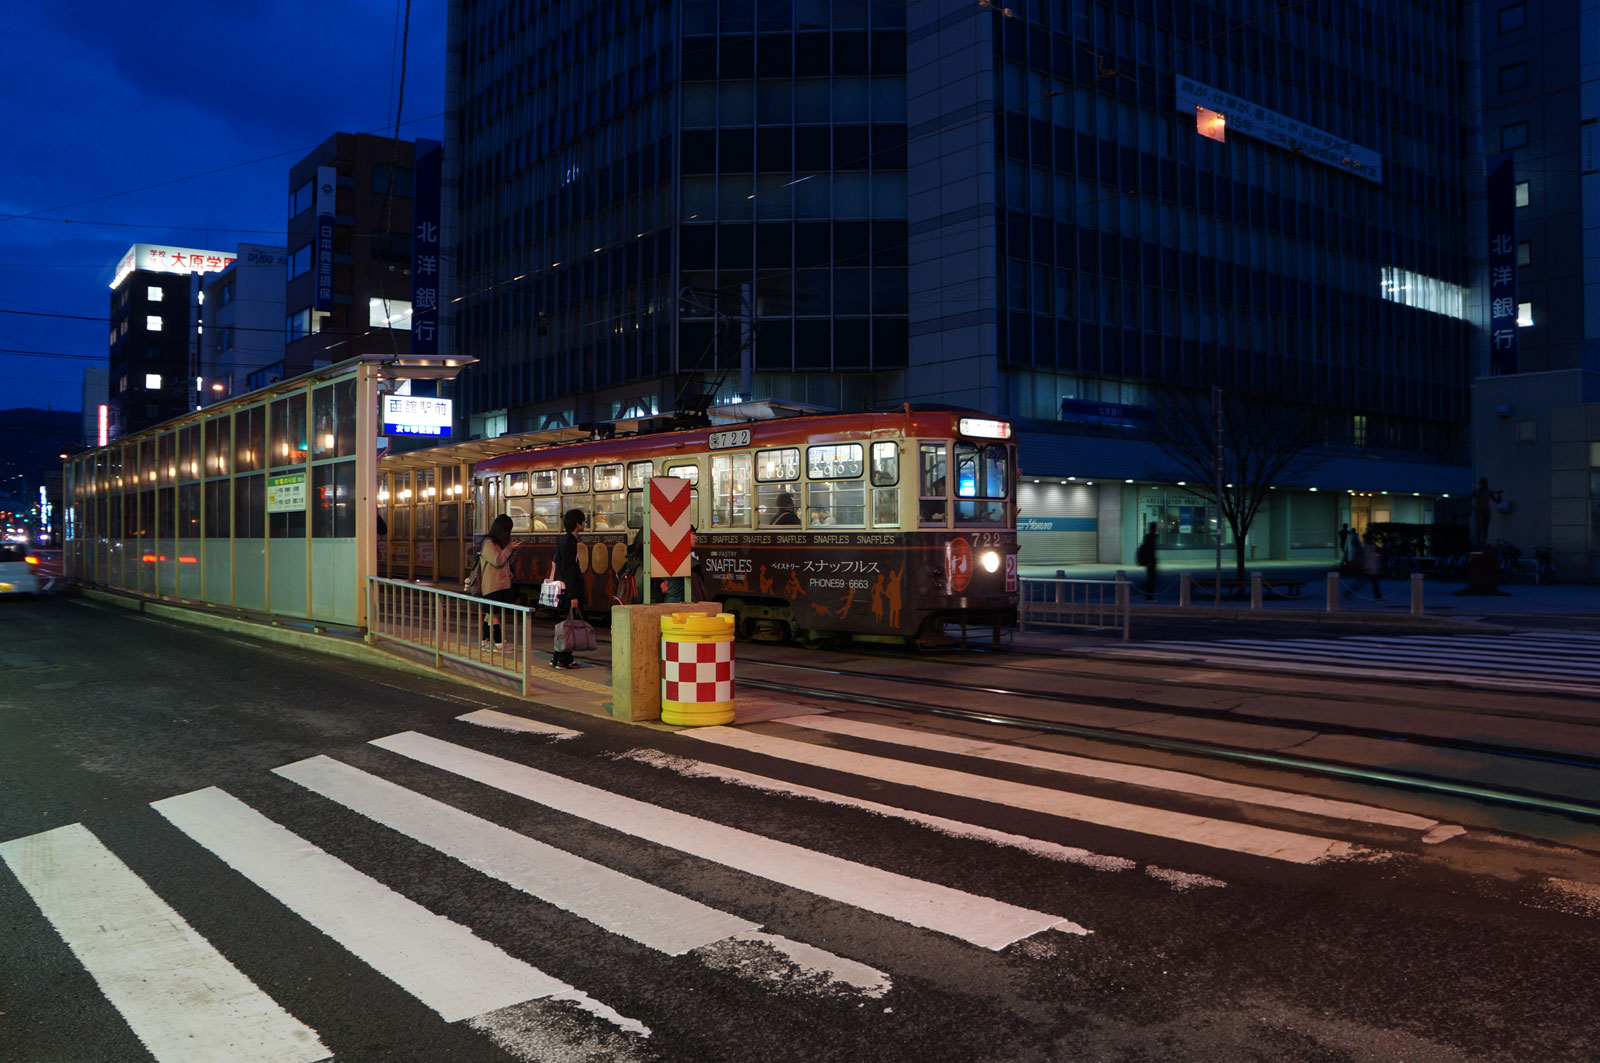 I use tram and did short walk to go to Hakodate ropeway station :)